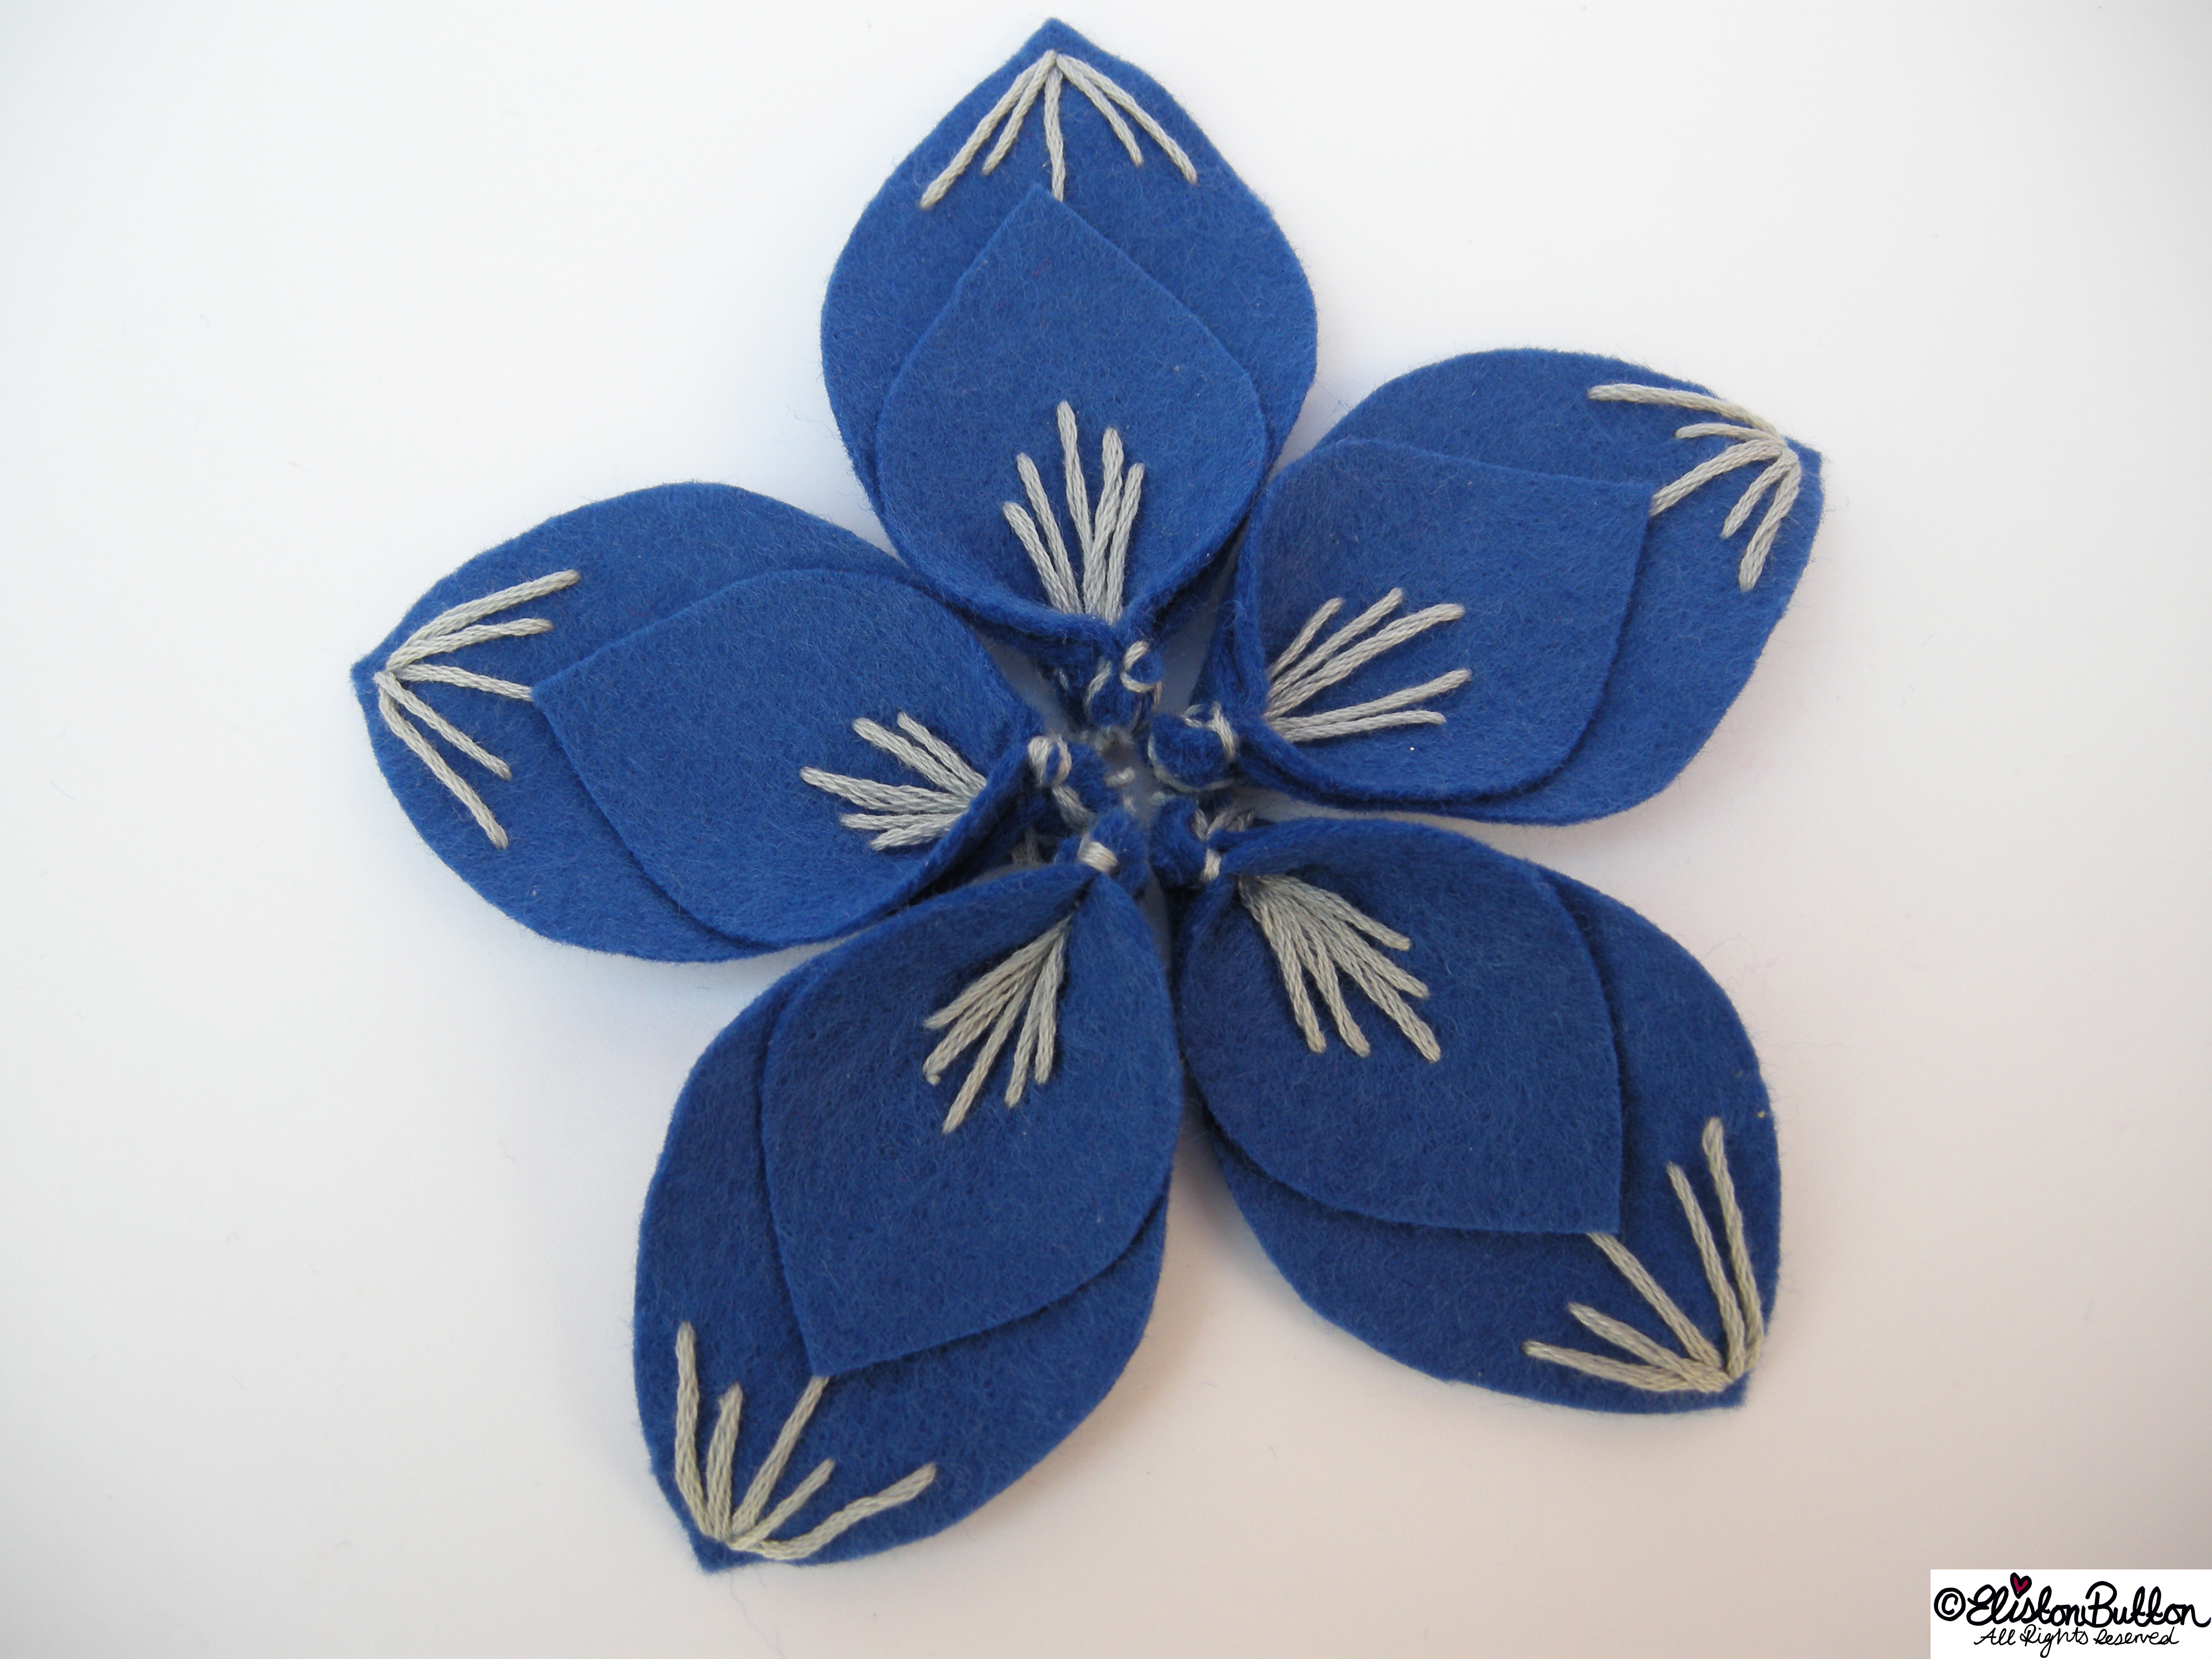 Out of the Blue Embroidered Felt Flower Brooch - Putting together the Pieces - 27 Before 27 - Out of the Blue at www.elistonbutton.com - Eliston Button - That Crafty Kid – Art, Design, Craft & Adventure.